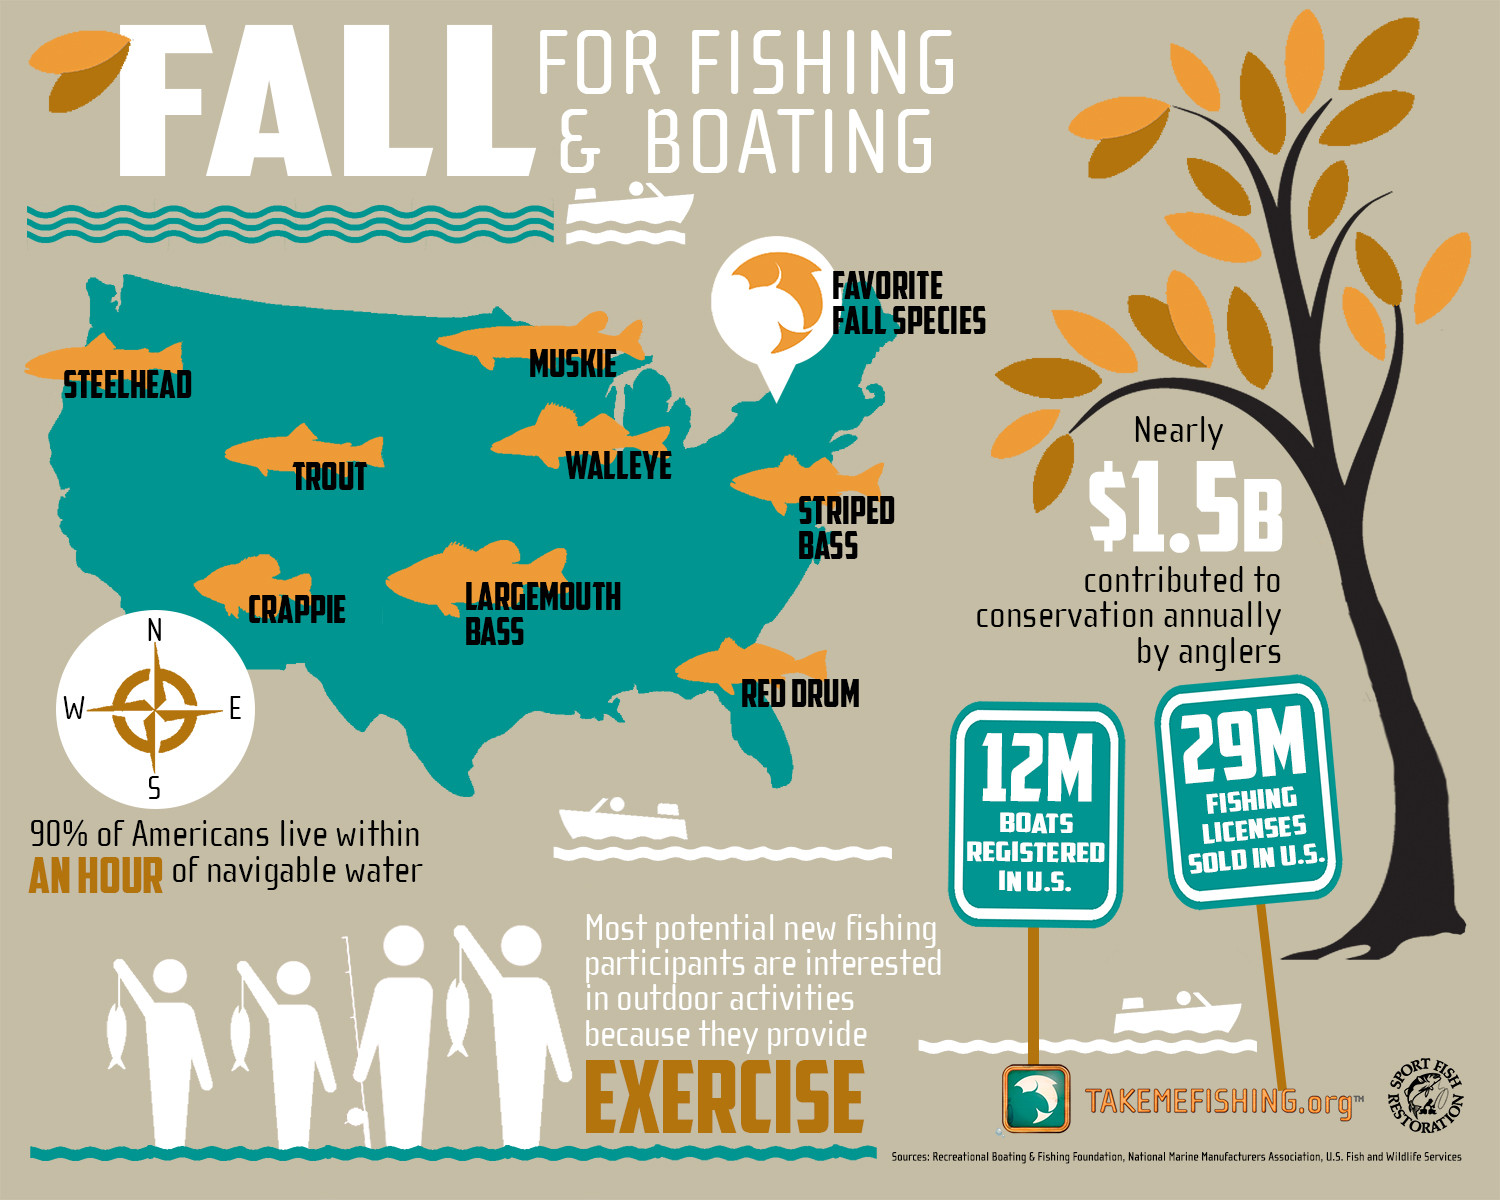 5 Reasons to Fall for Fishing and Boating Infographic